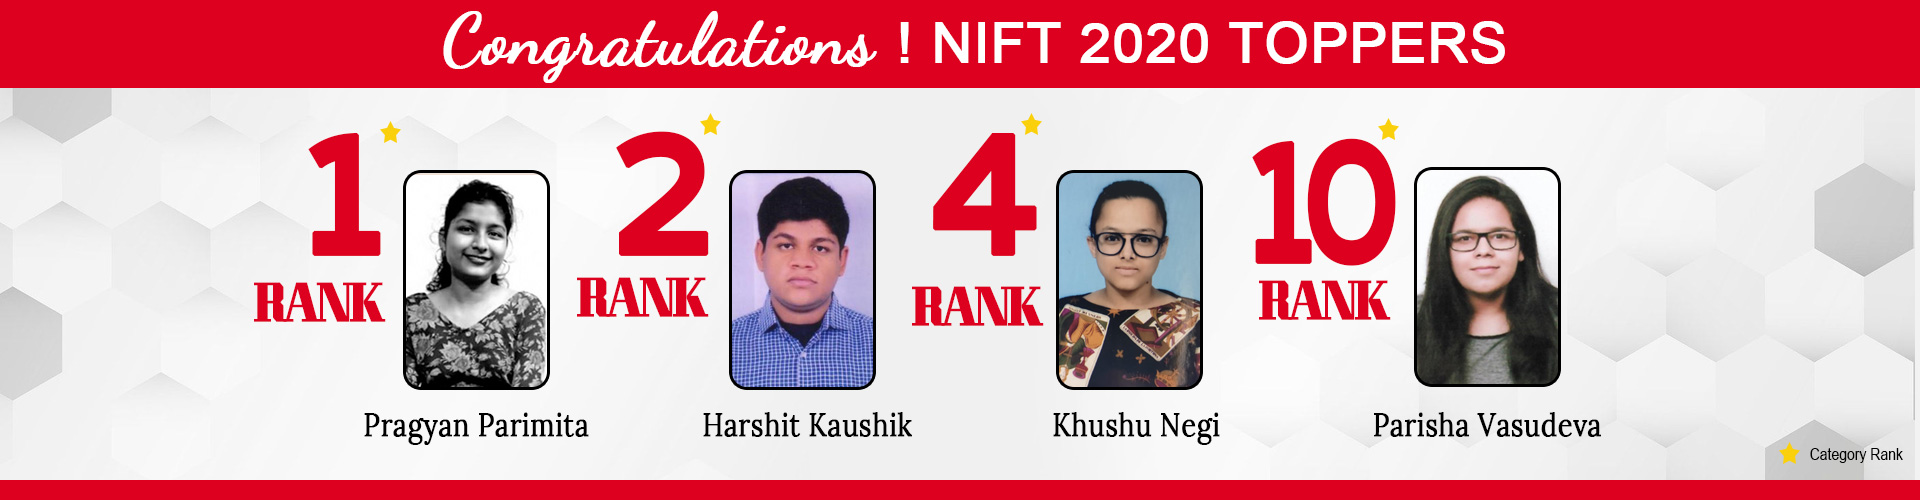 nift 2020 TOPPERS